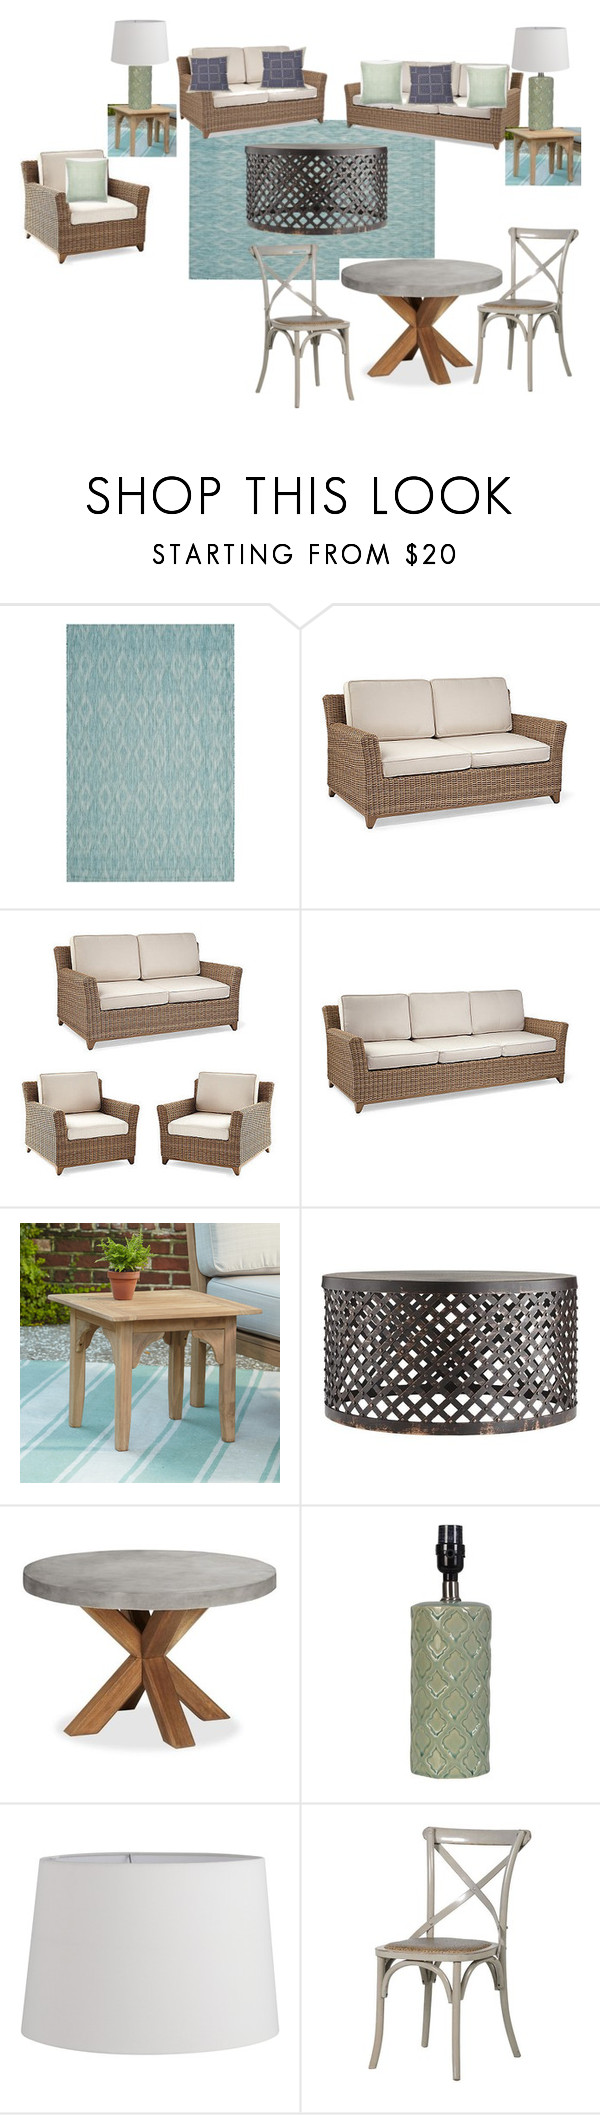 Threshold home decor shop for threshold home decor on polyvore -  Jg Pation Option 2 By Cek Harris On Polyvore Featuring Interior Home Homedesign Homesinterior Decorating